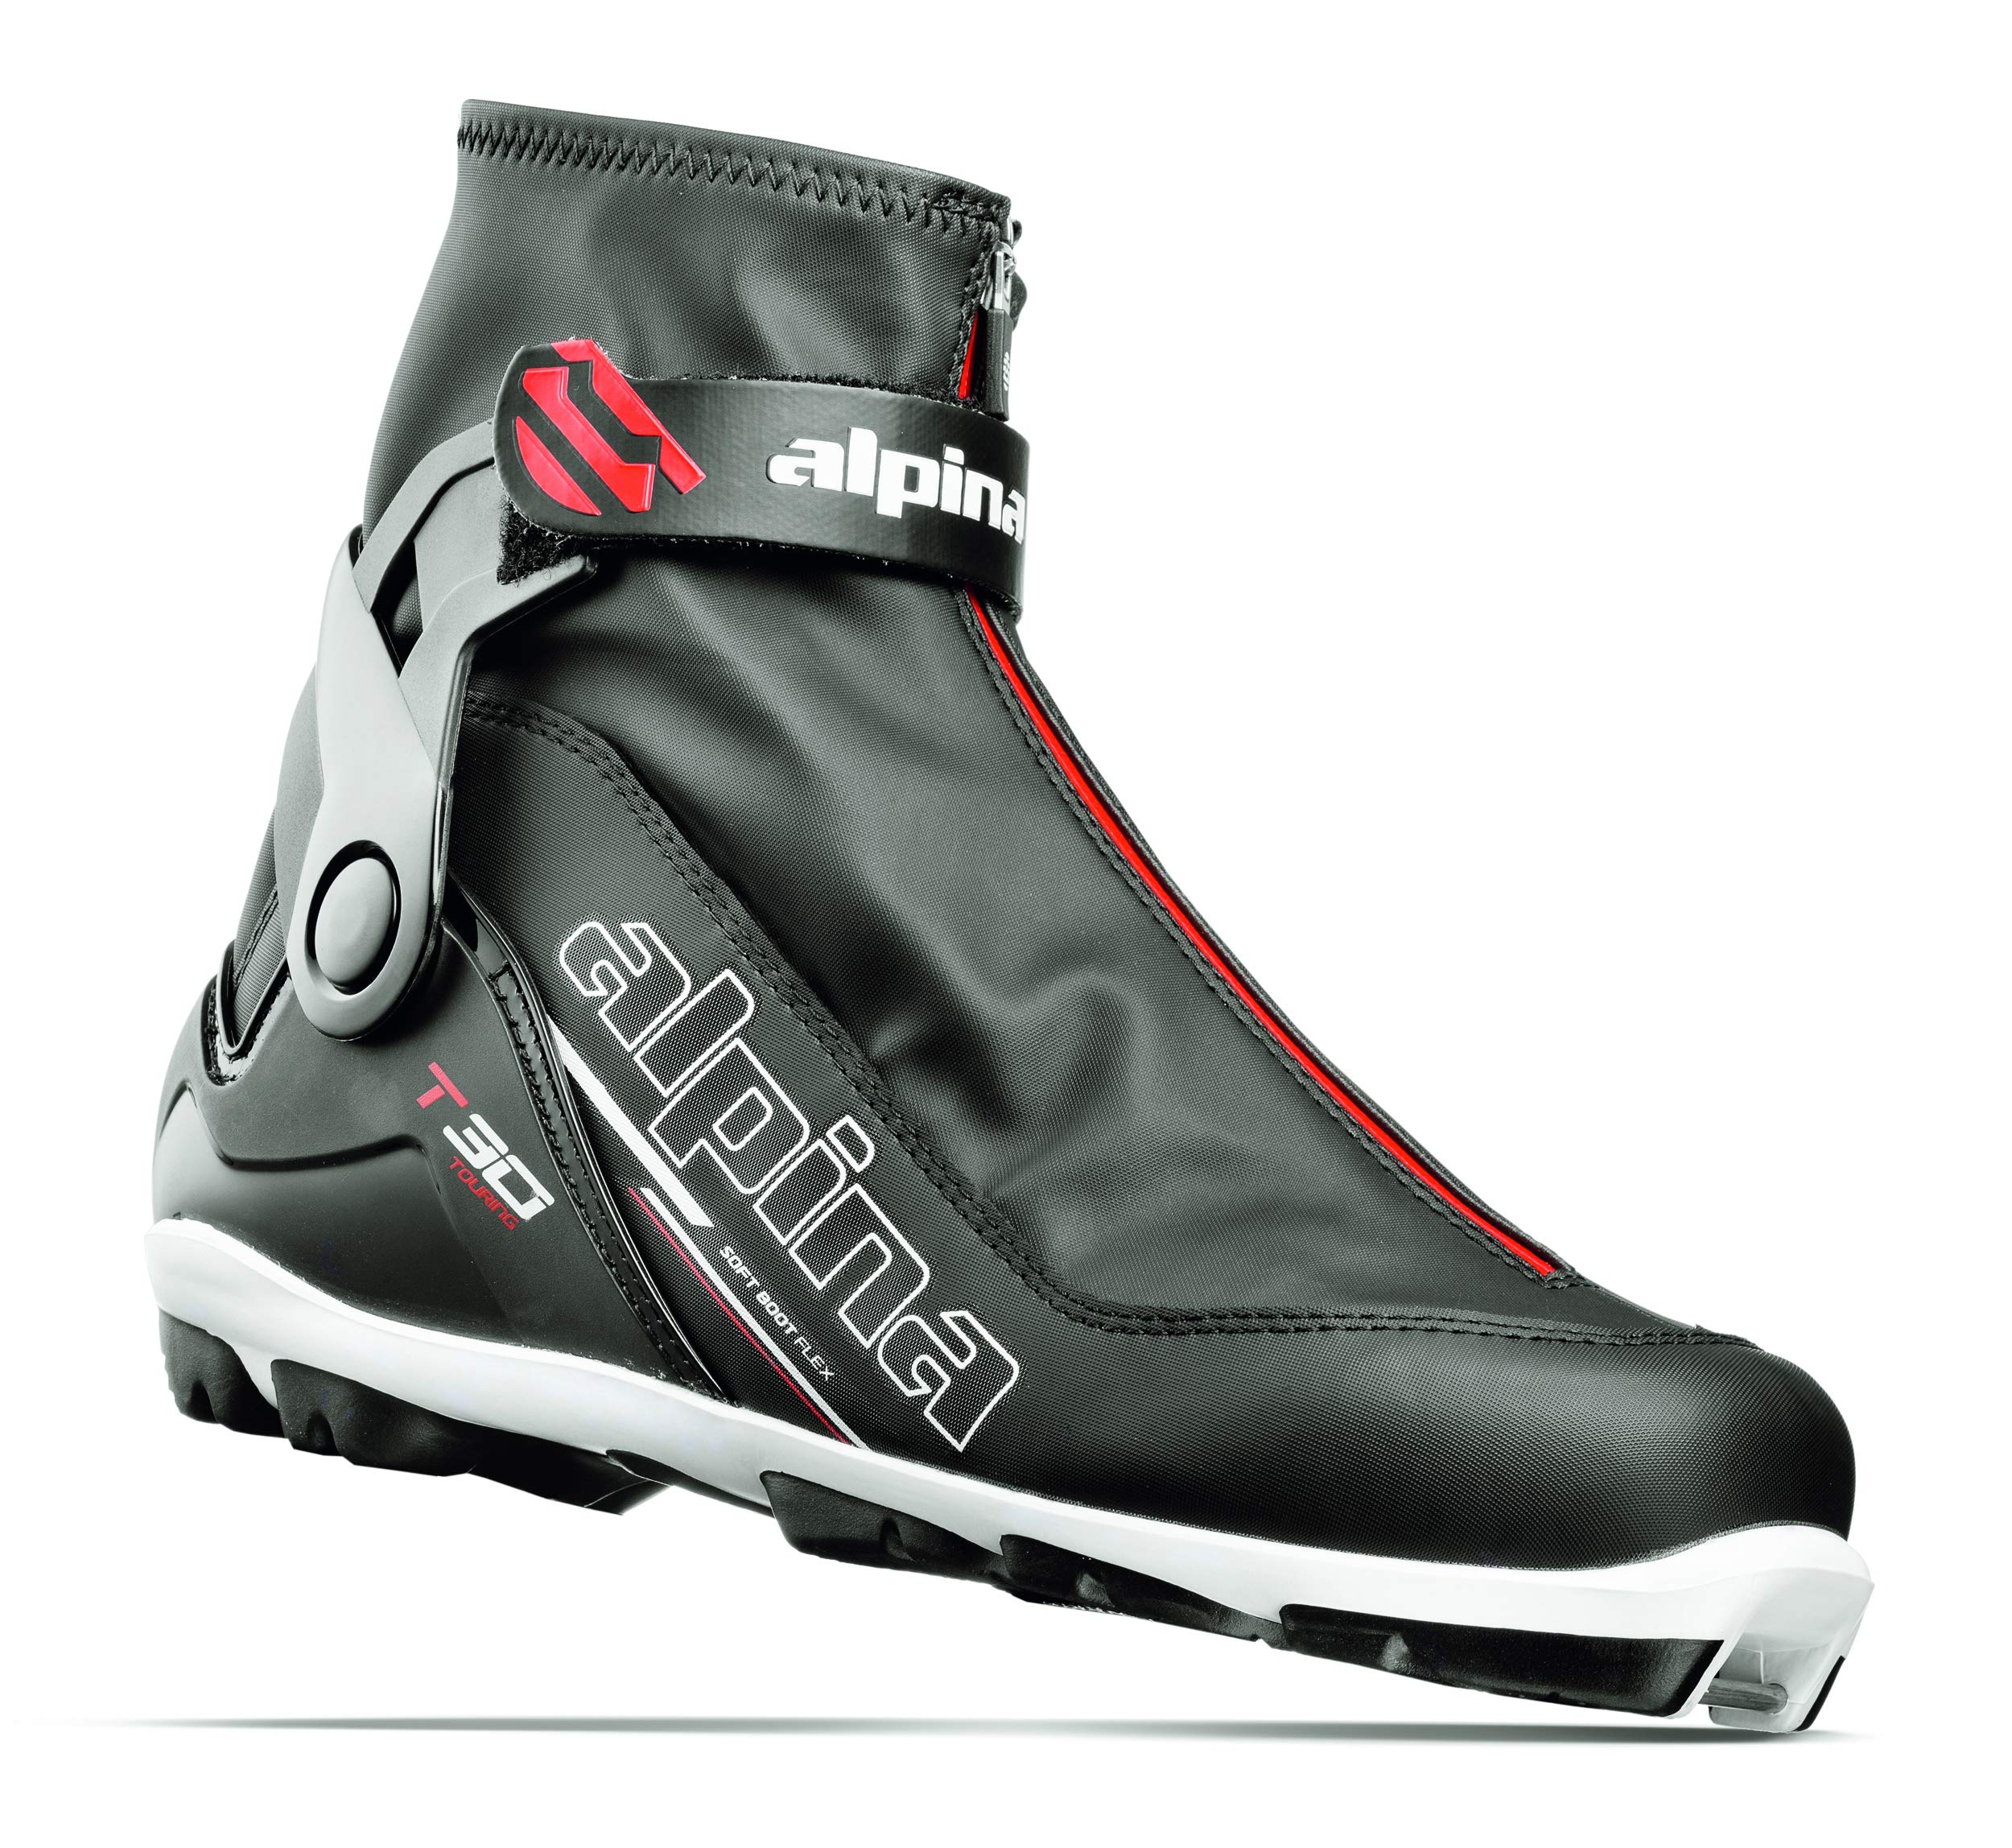 Alpina Sports T30 Cross Country Touring Ski Boots, Black/White/Red, Size 35